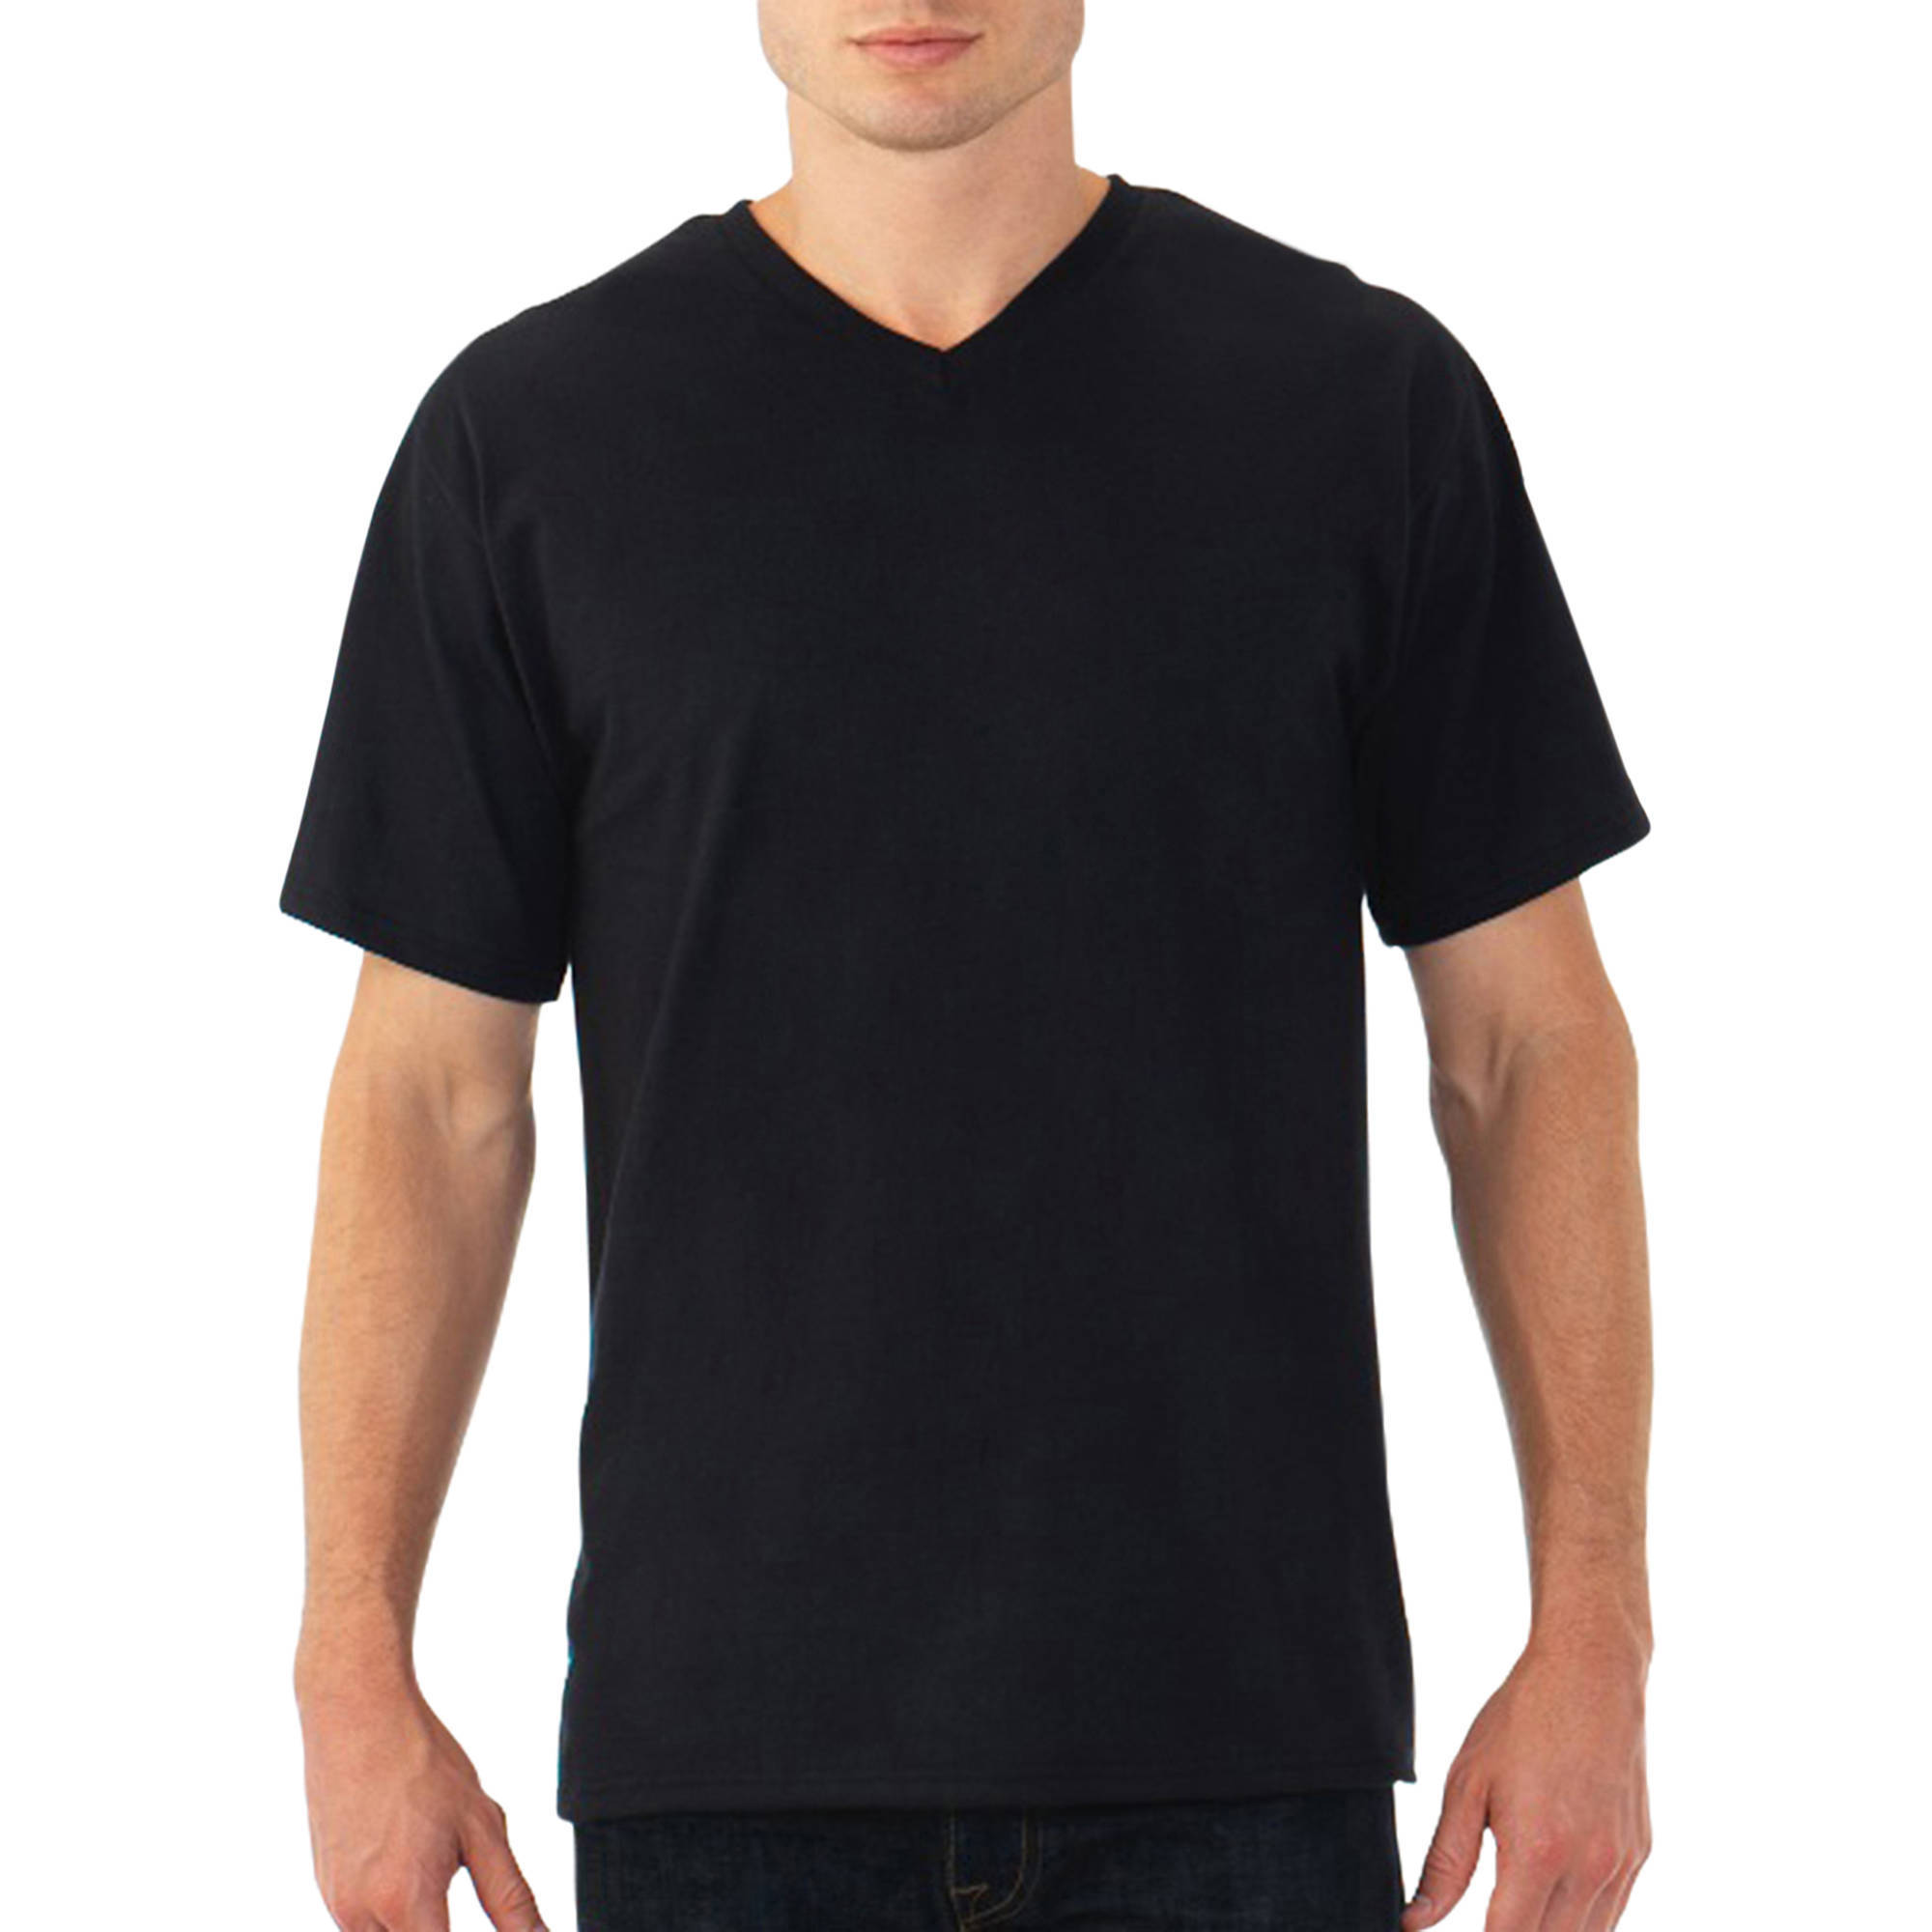 Fruit of the Loom Men's Short Sleeve V-neck Tee